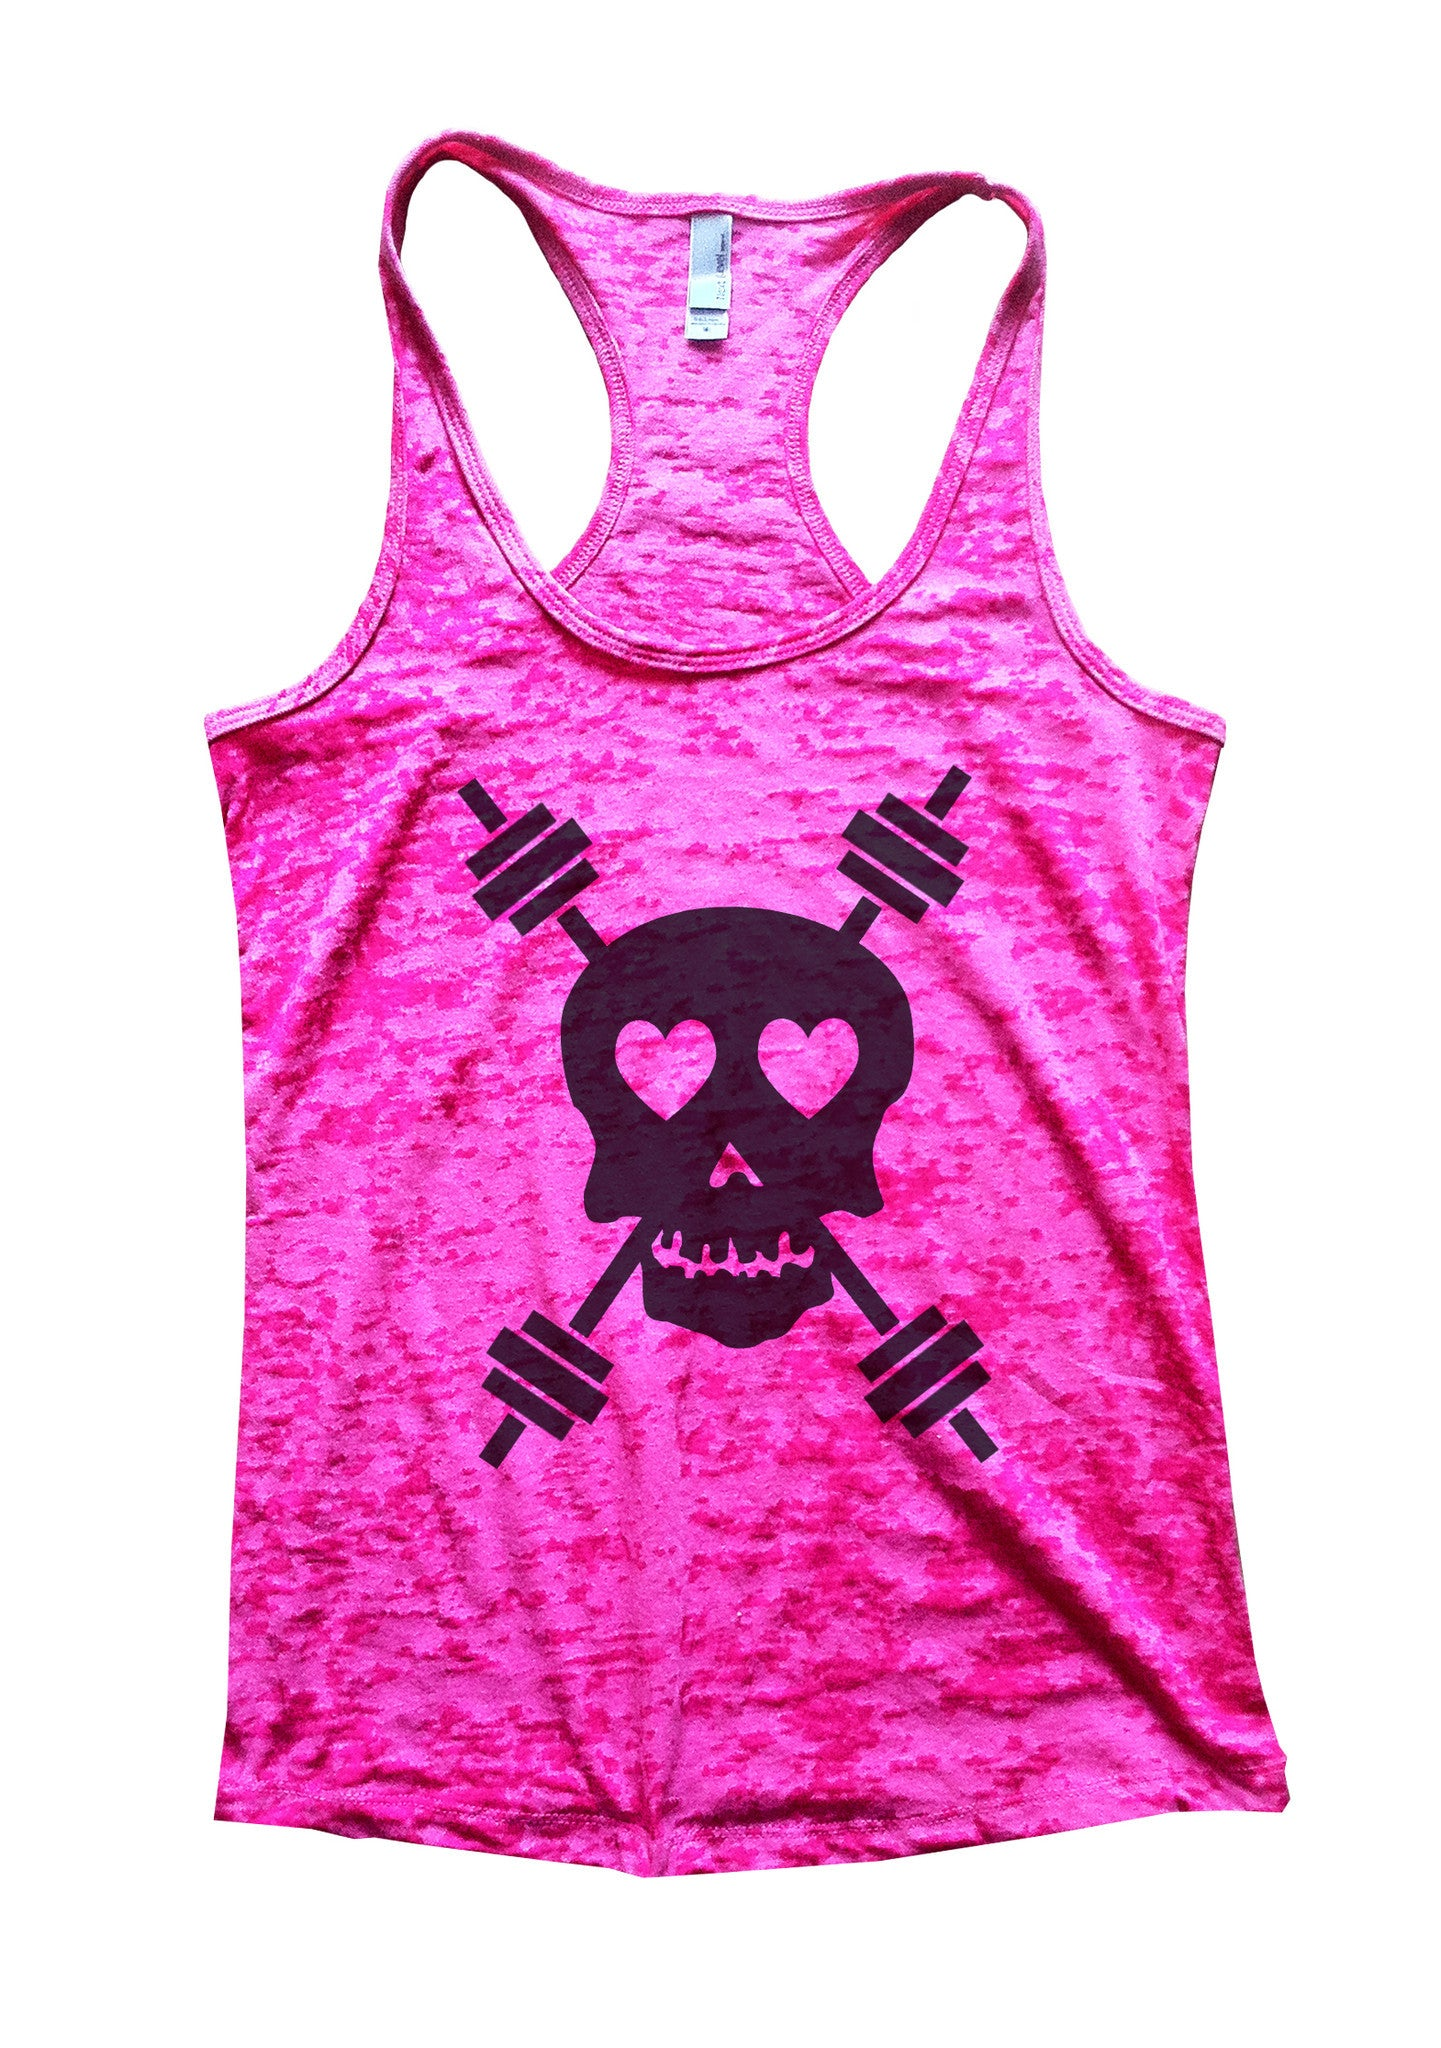 Skull And Weight Bars Burnout Tank Top By BurnoutTankTops.com - 653 - Funny Shirts Tank Tops Burnouts and Triblends  - 3